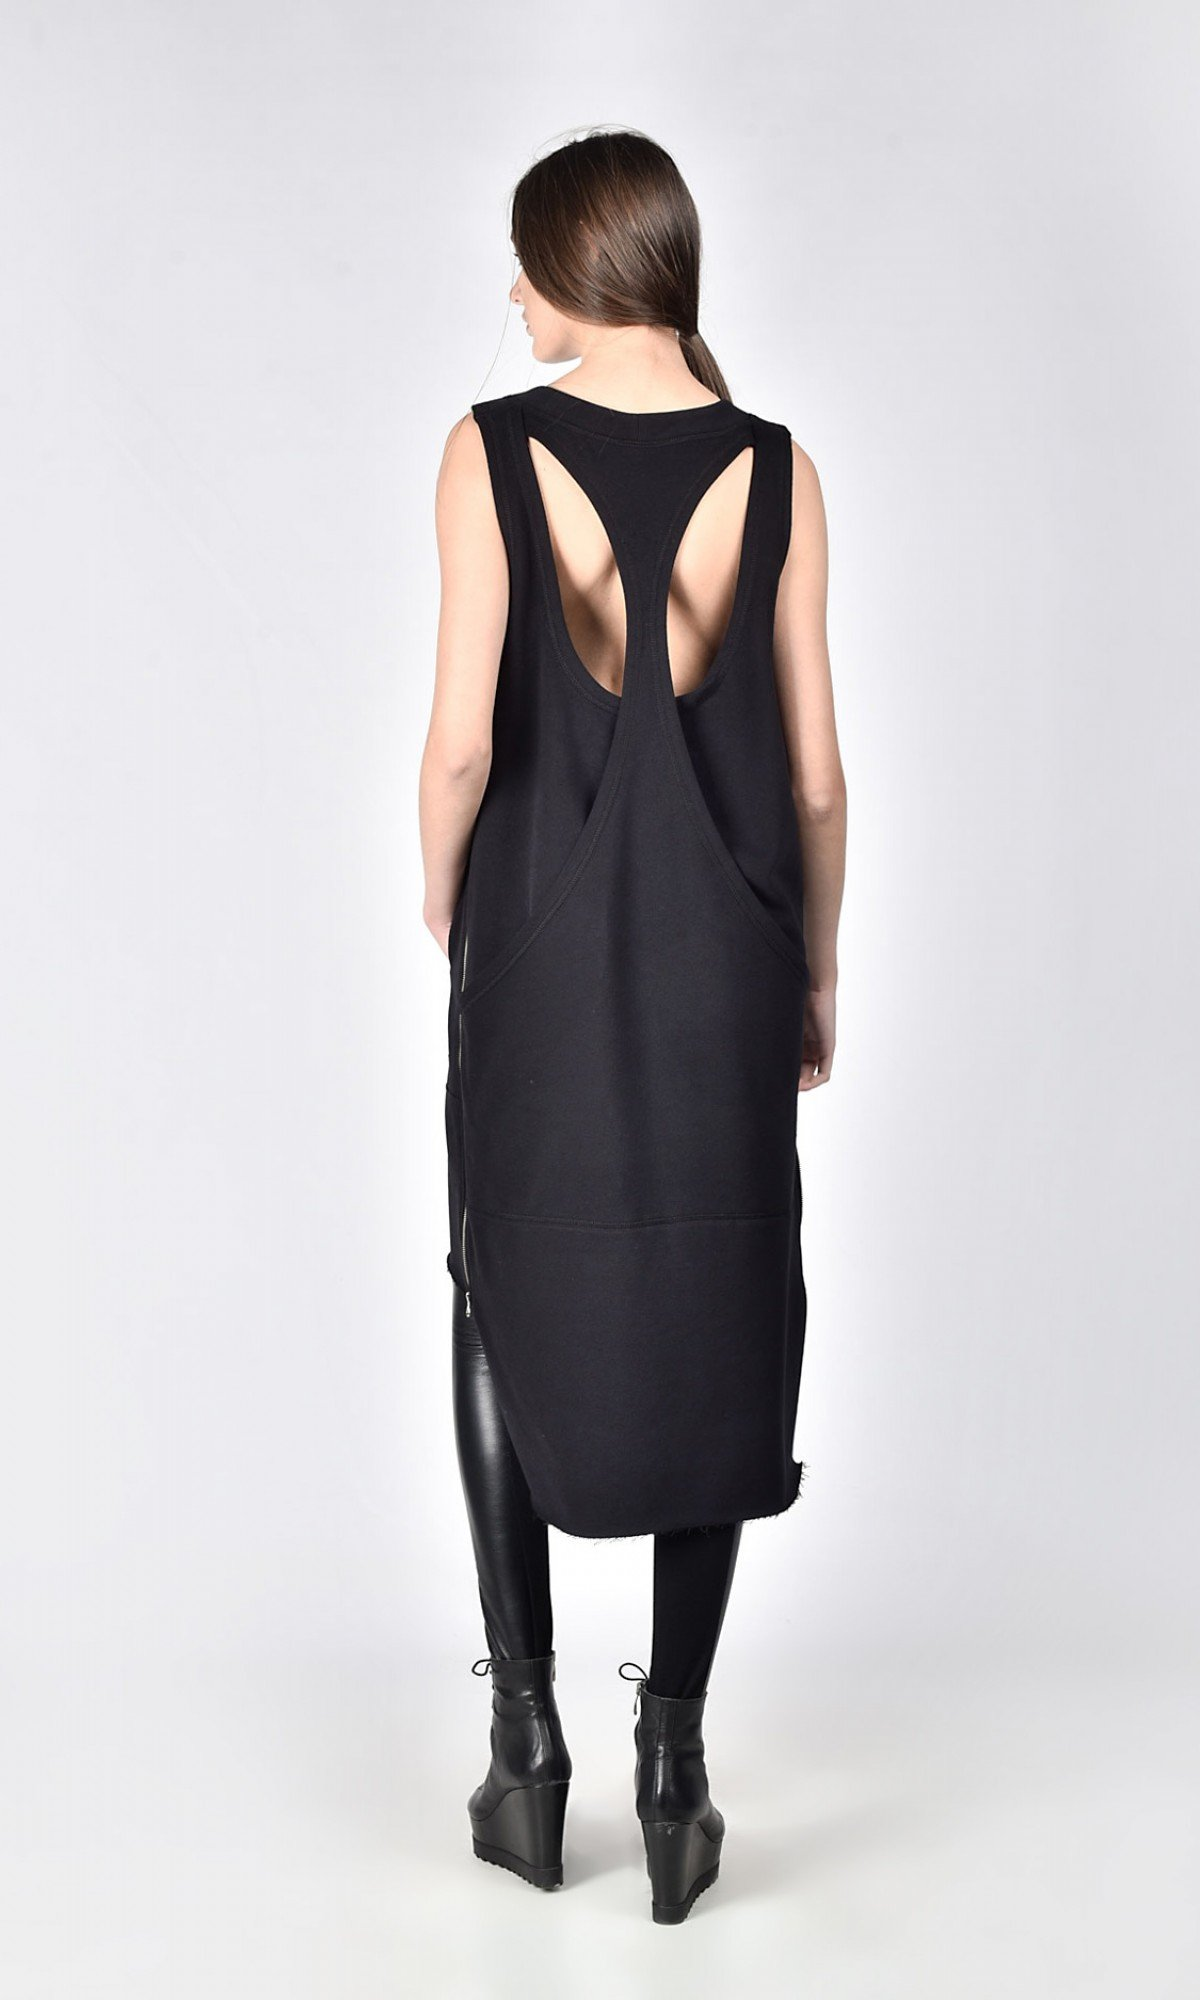 Racer Back Tunic Dress with pockets A03718